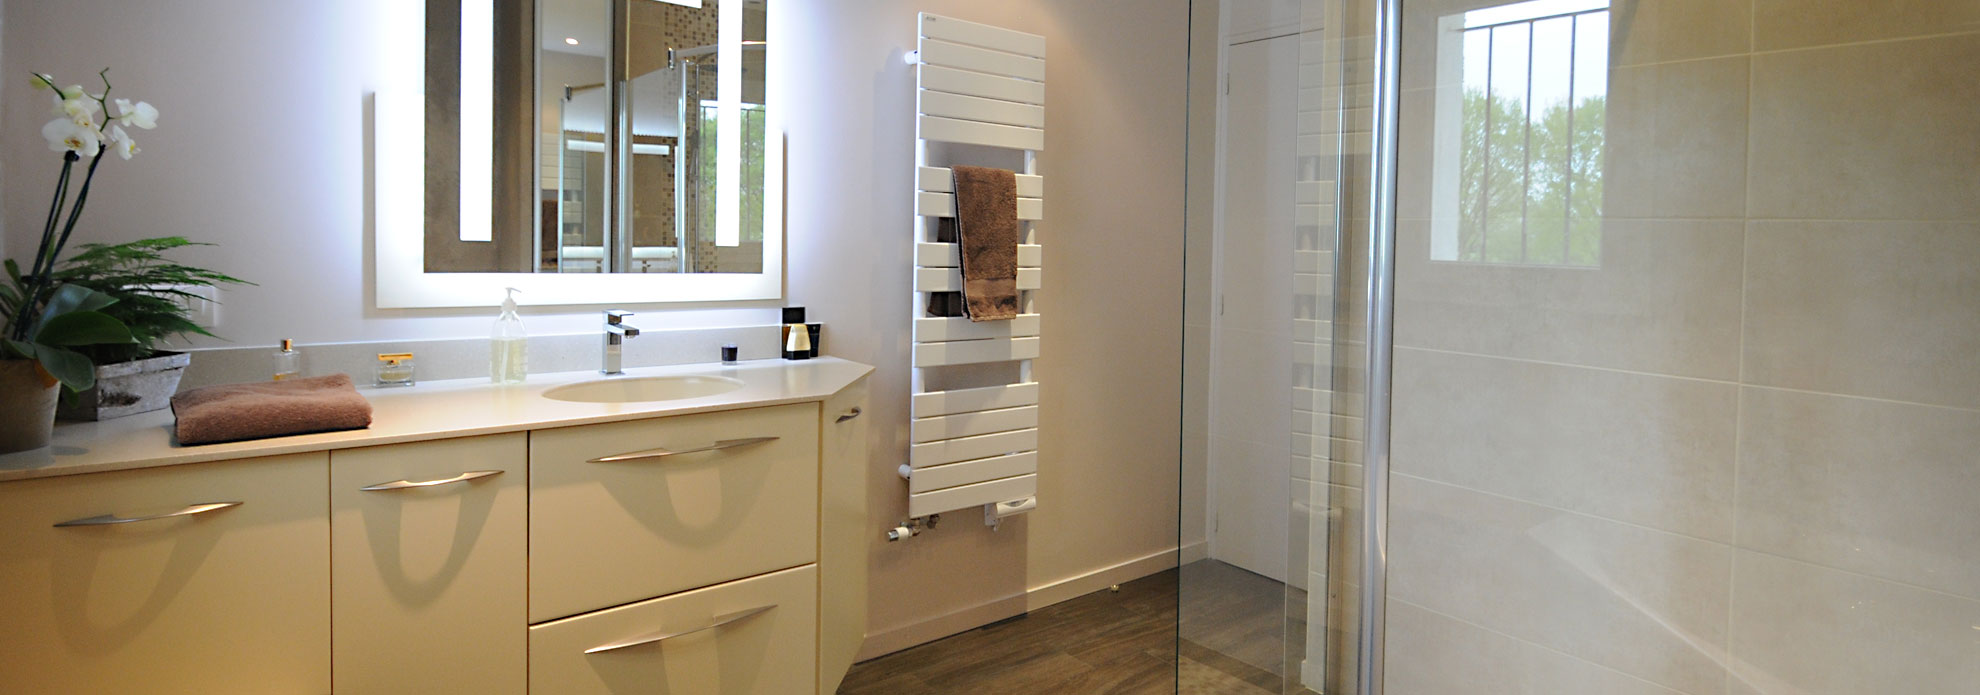 Evm cr ation architecte d 39 int rieur nantes et angers - Creation de salle de bain ...